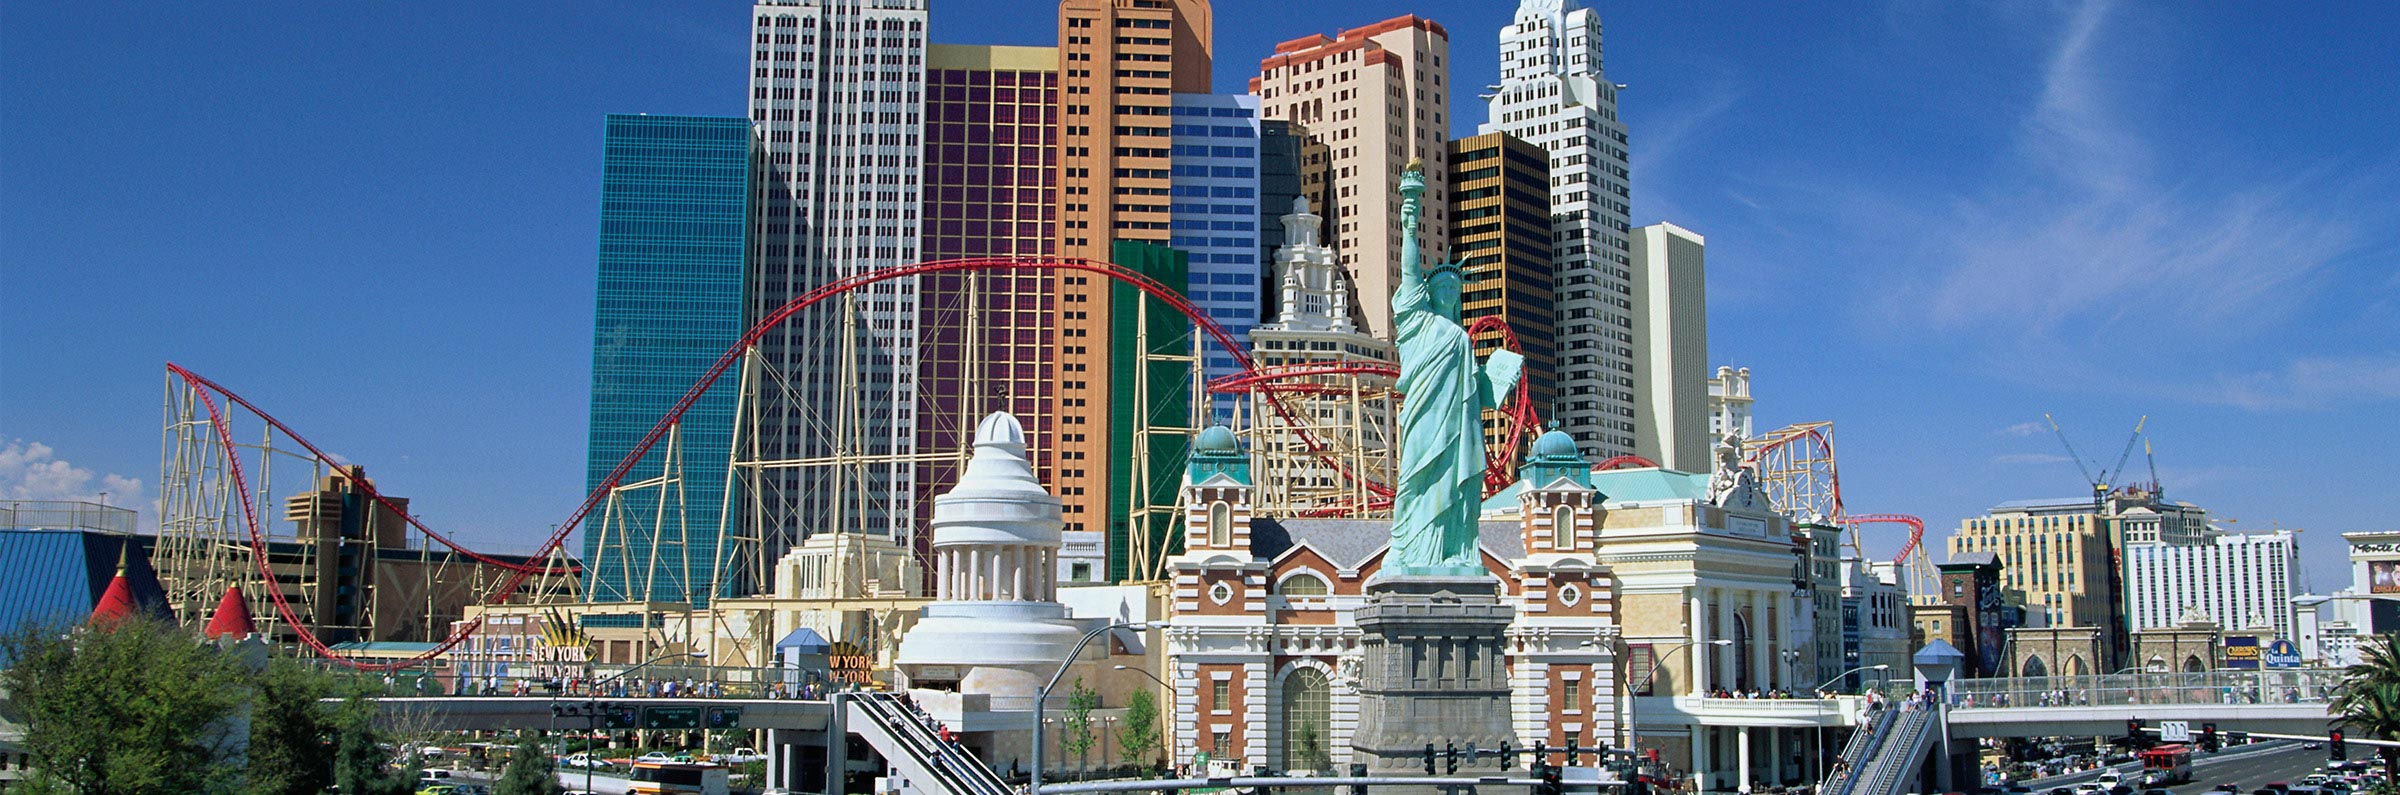 Sights and attractions in Las Vegas